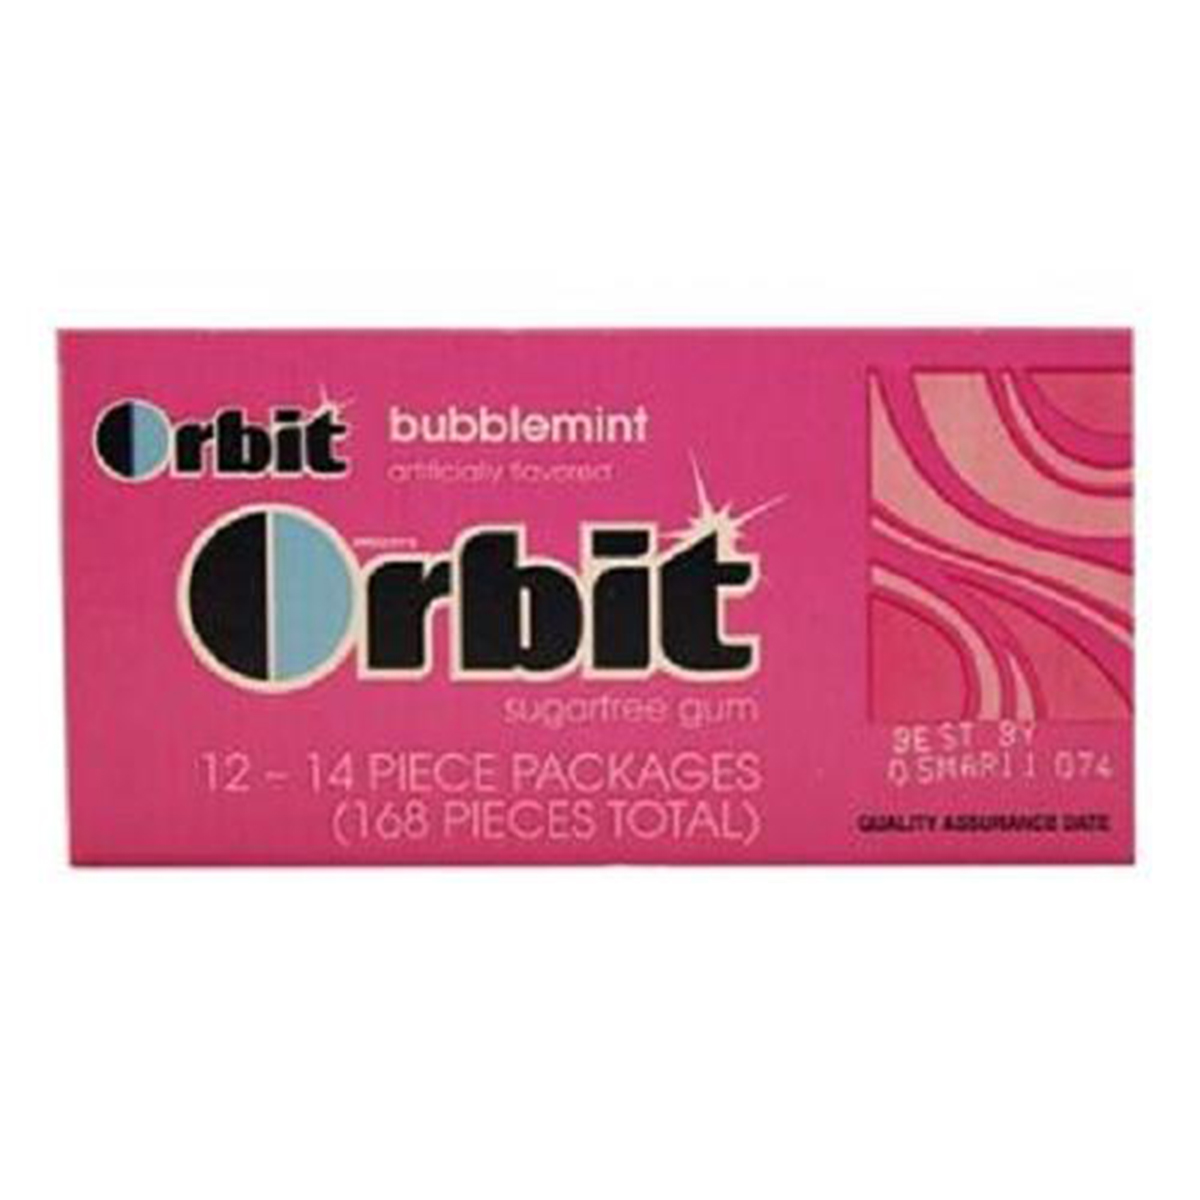 Product Of Orbit, Bubblemint, Count 12 (14S) - Gum / Grab Varieties & Flavors